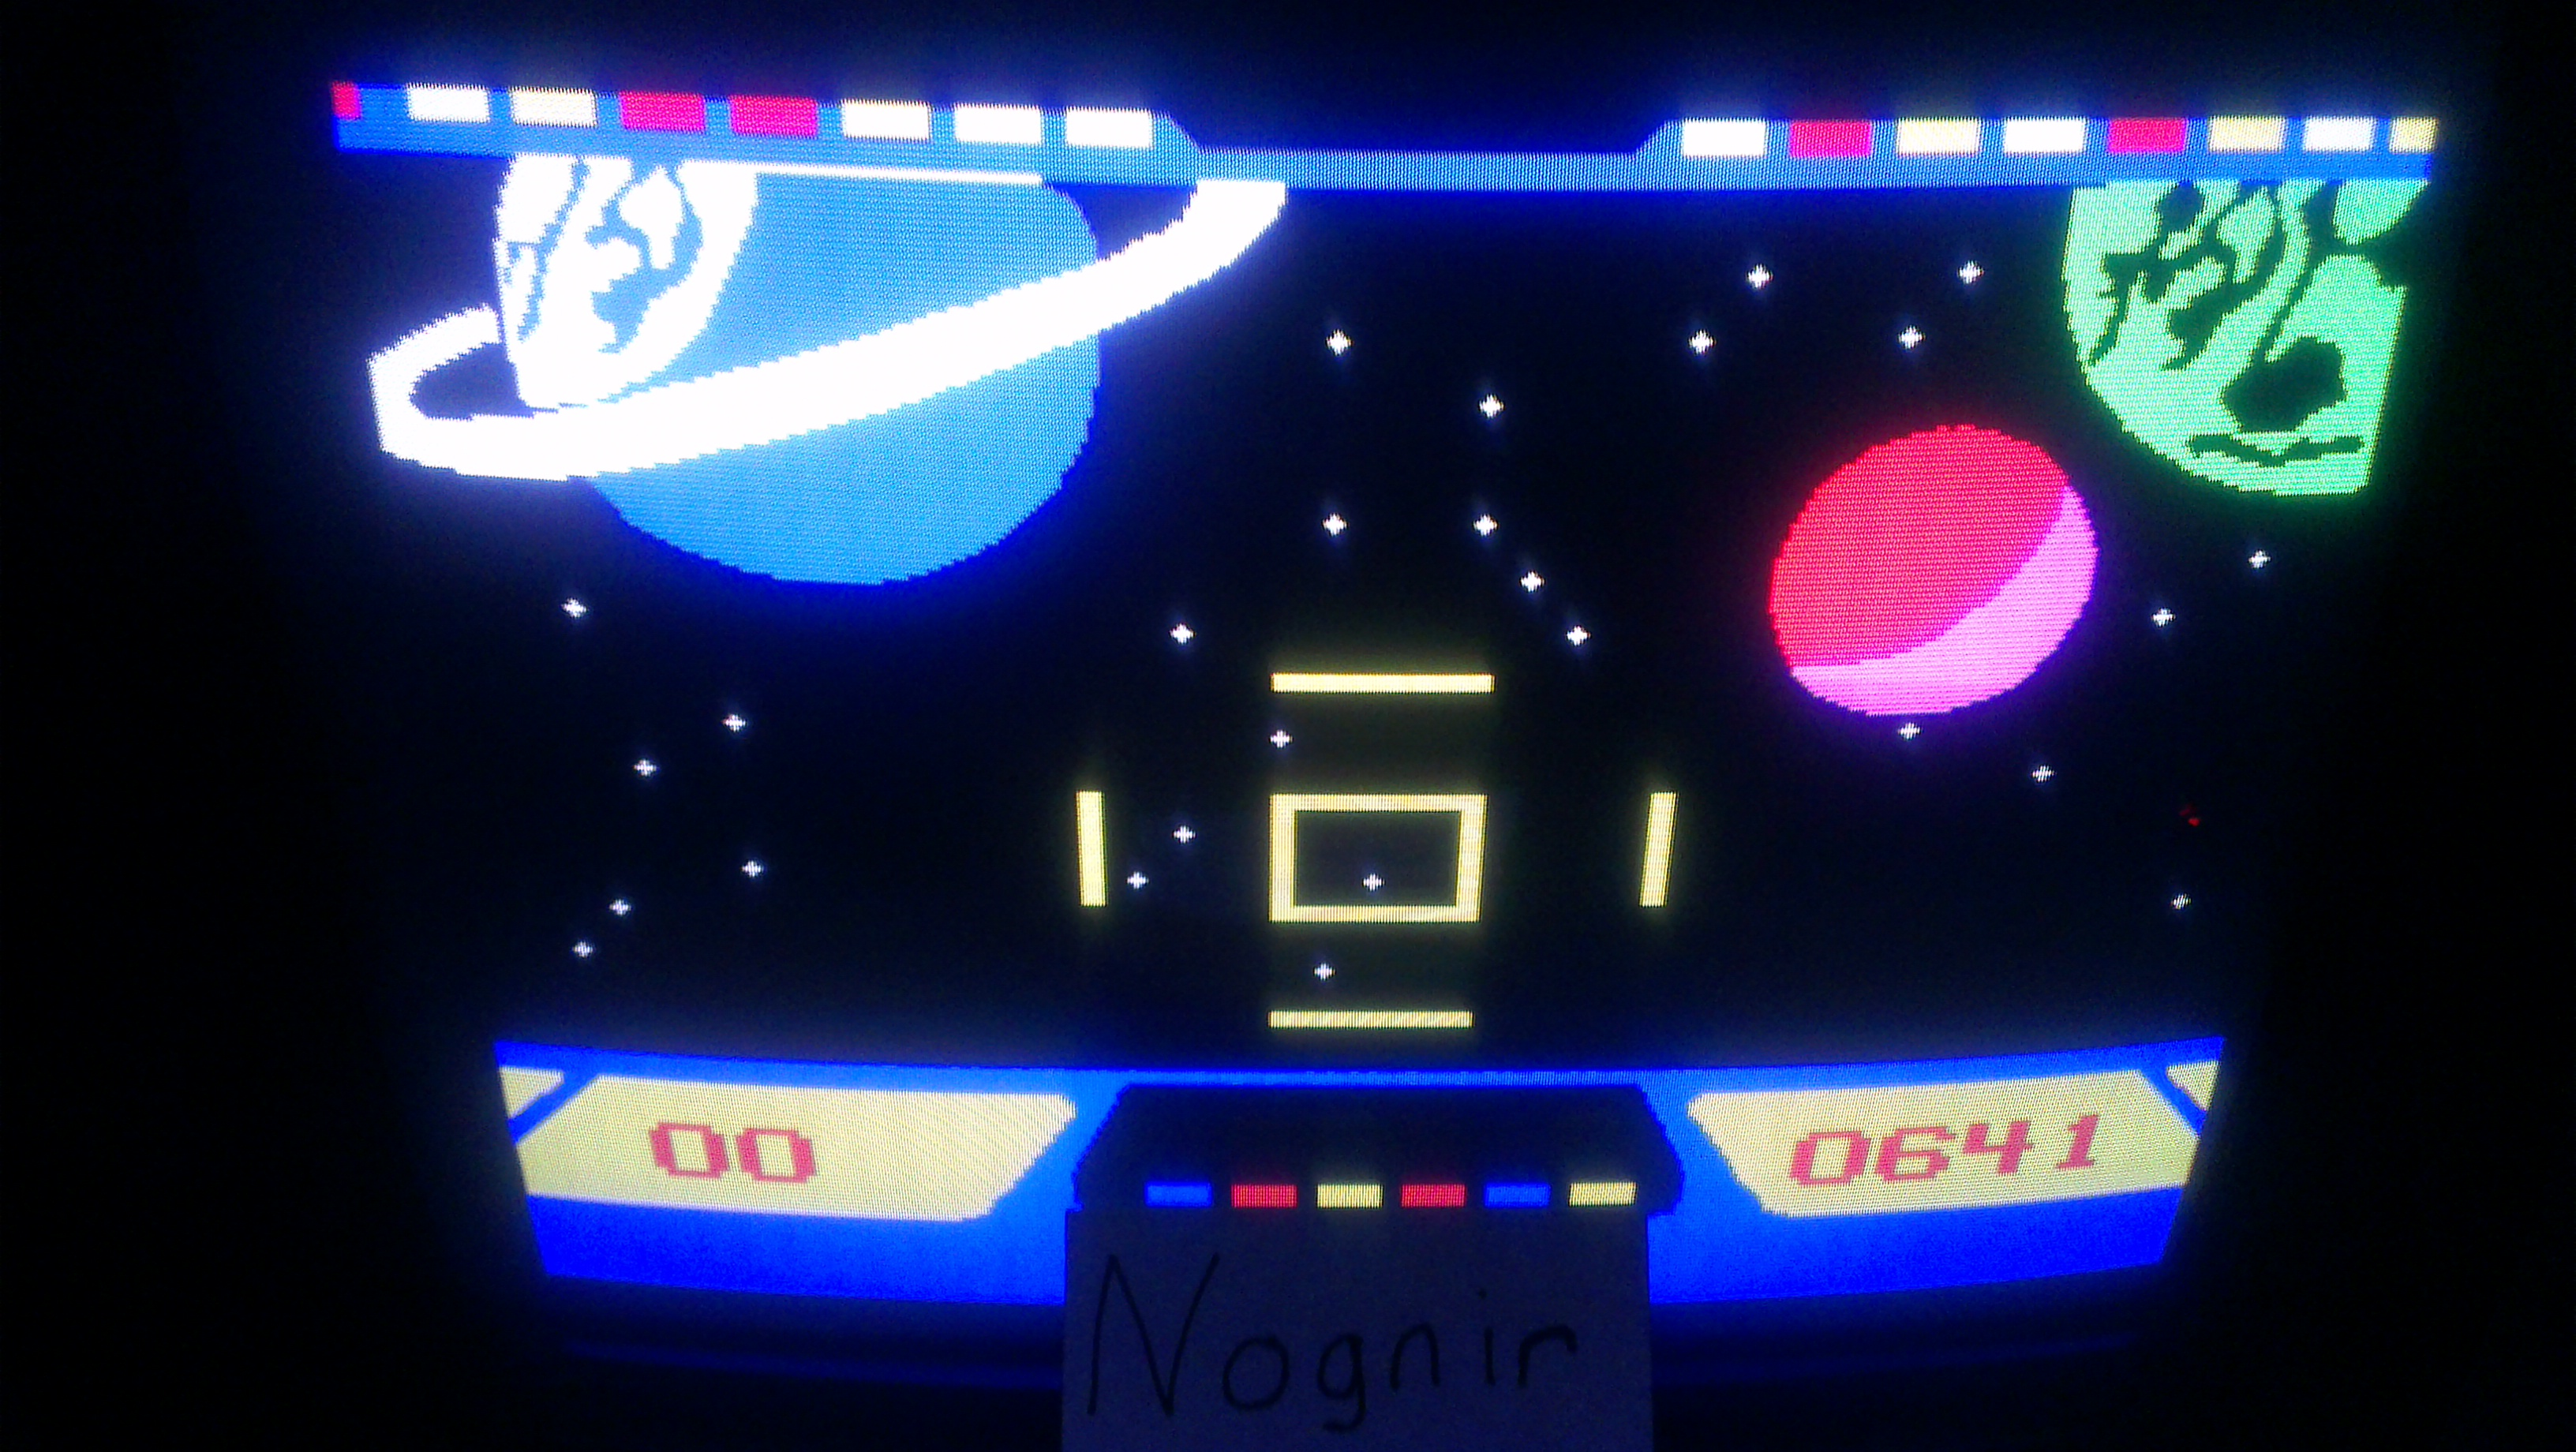 Nognir: Cosmic Conflict (Odyssey 2 / Videopac) 641 points on 2014-05-23 17:30:16